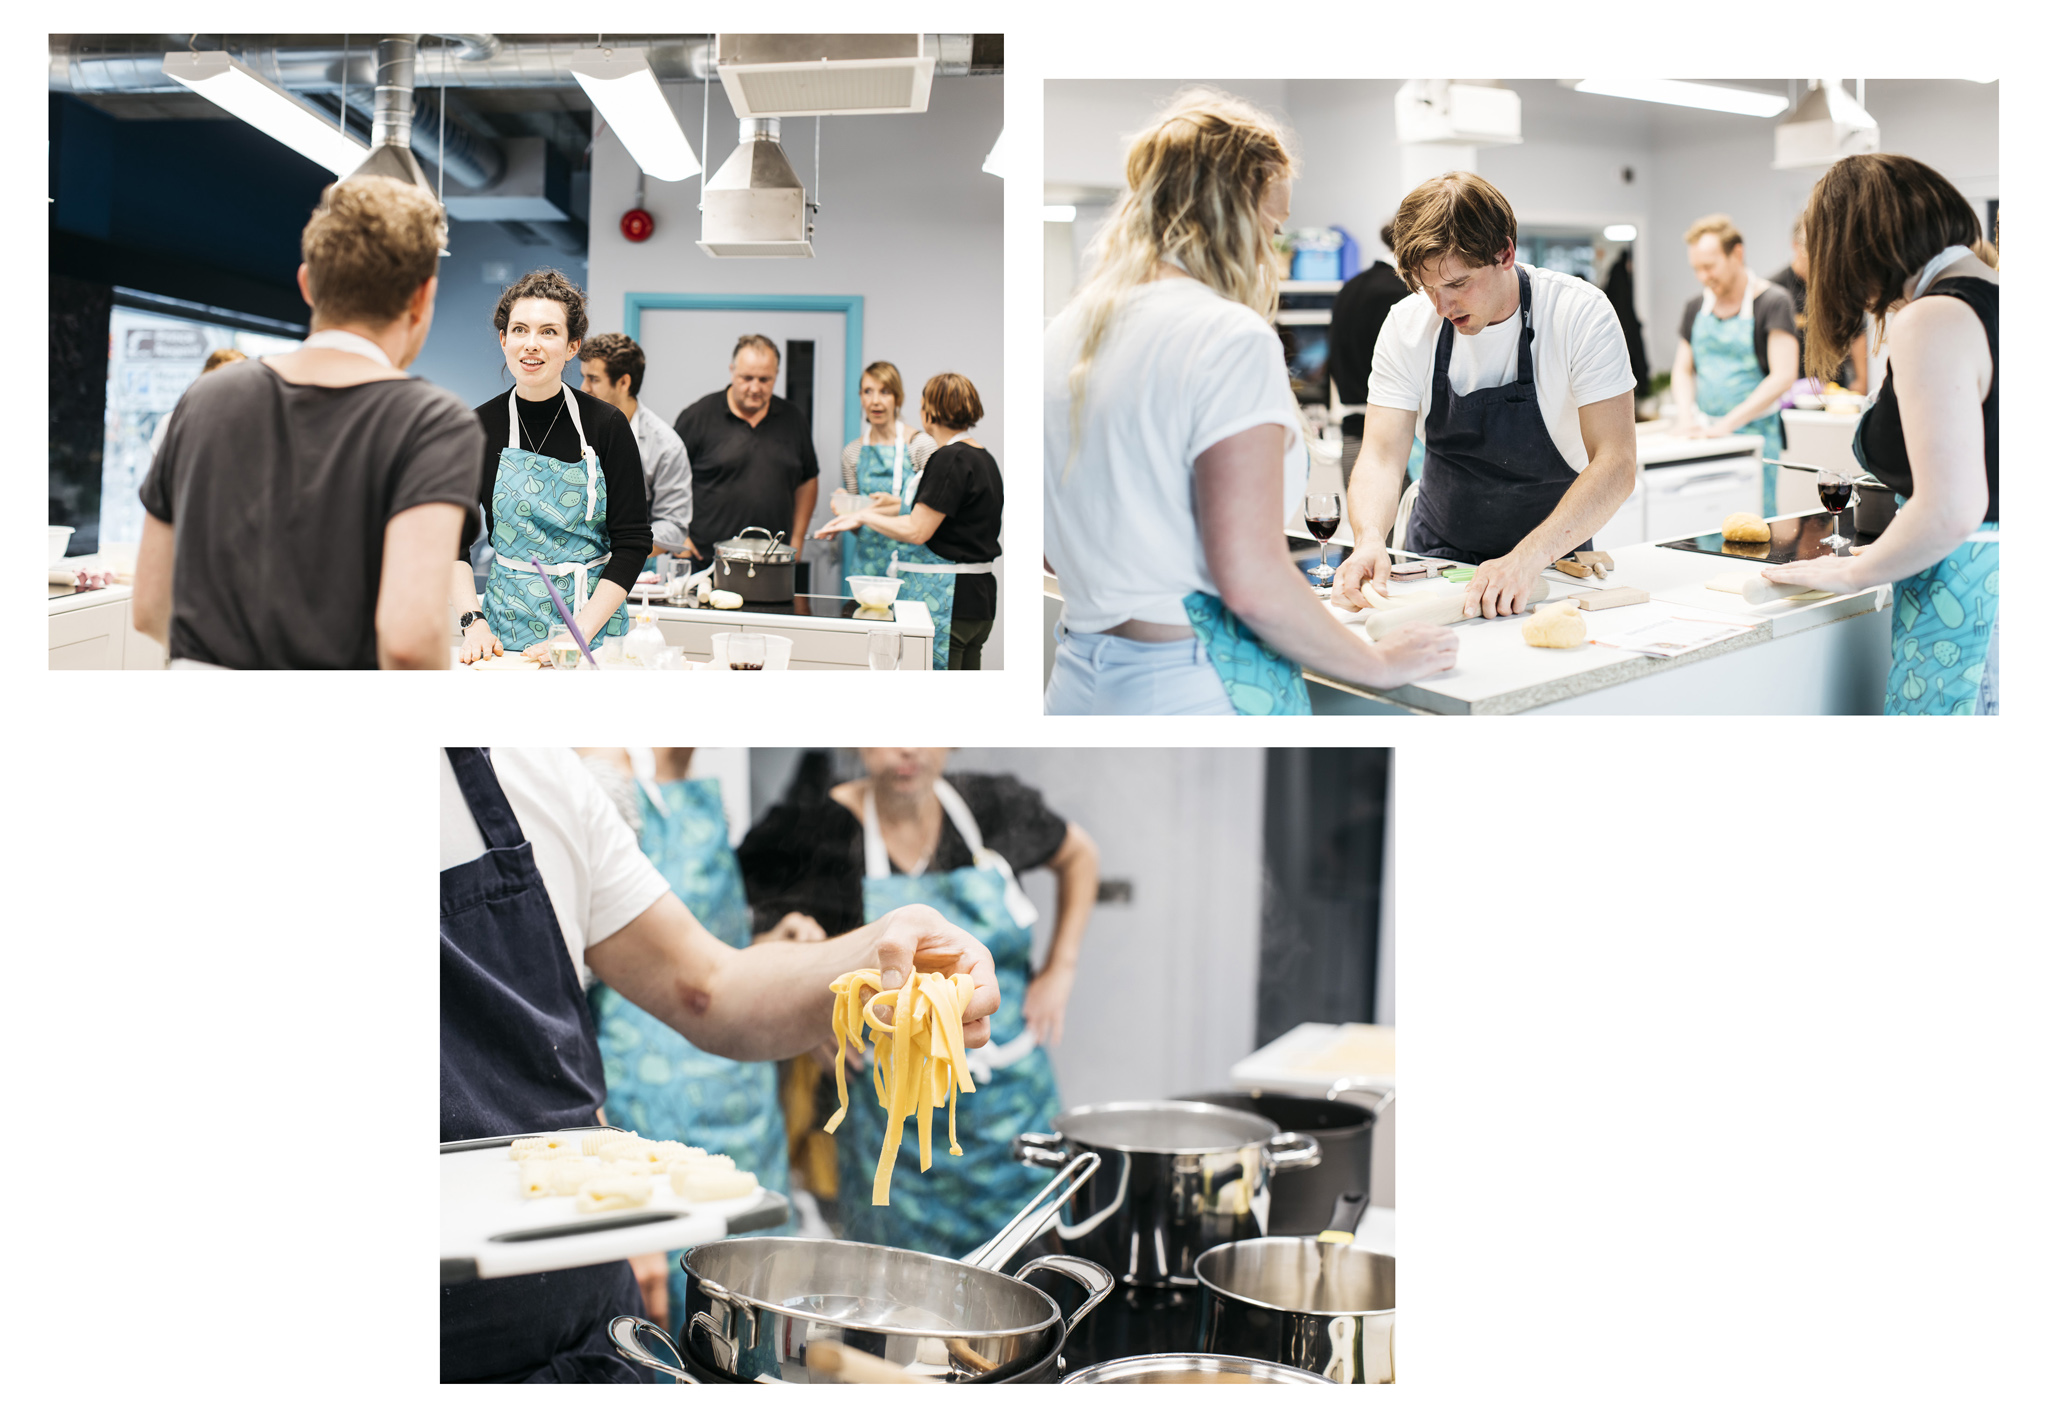 The Community Kitchen is a space in Brighton that provide vulnerable people across the city funded by classes and venue hire from some of the biggest names in the cities food industry.